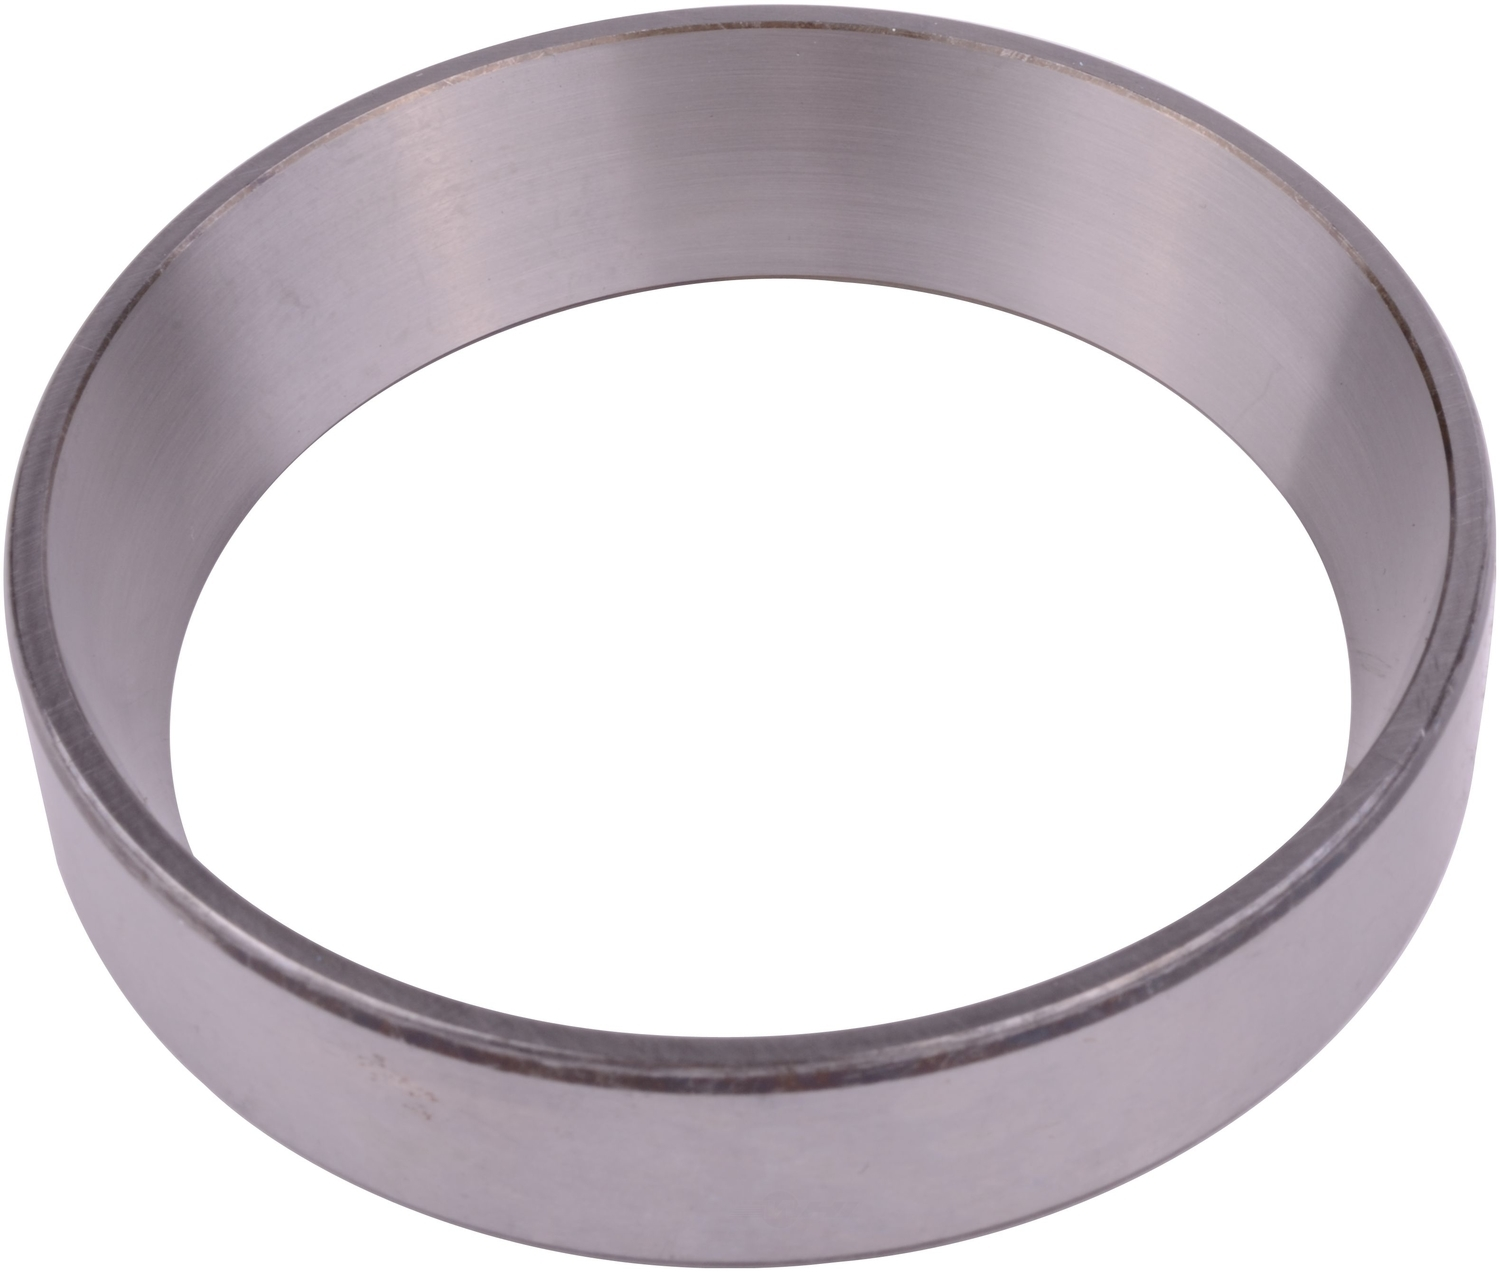 SKF (CHICAGO RAWHIDE) - Axle Differential Race (Rear) - SKF LM603012